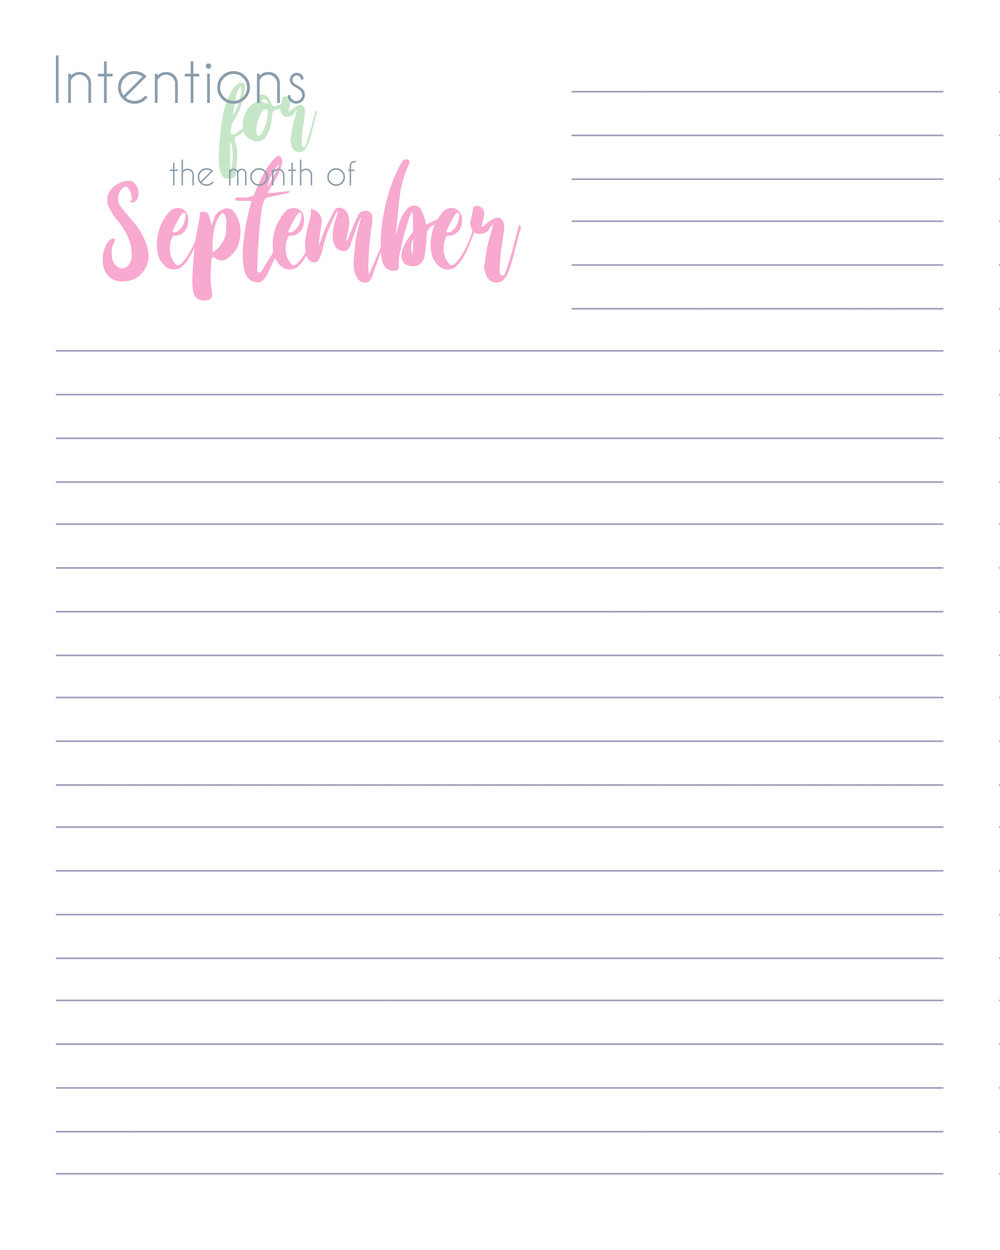 Intentions for the Month of September Freebie.jpg